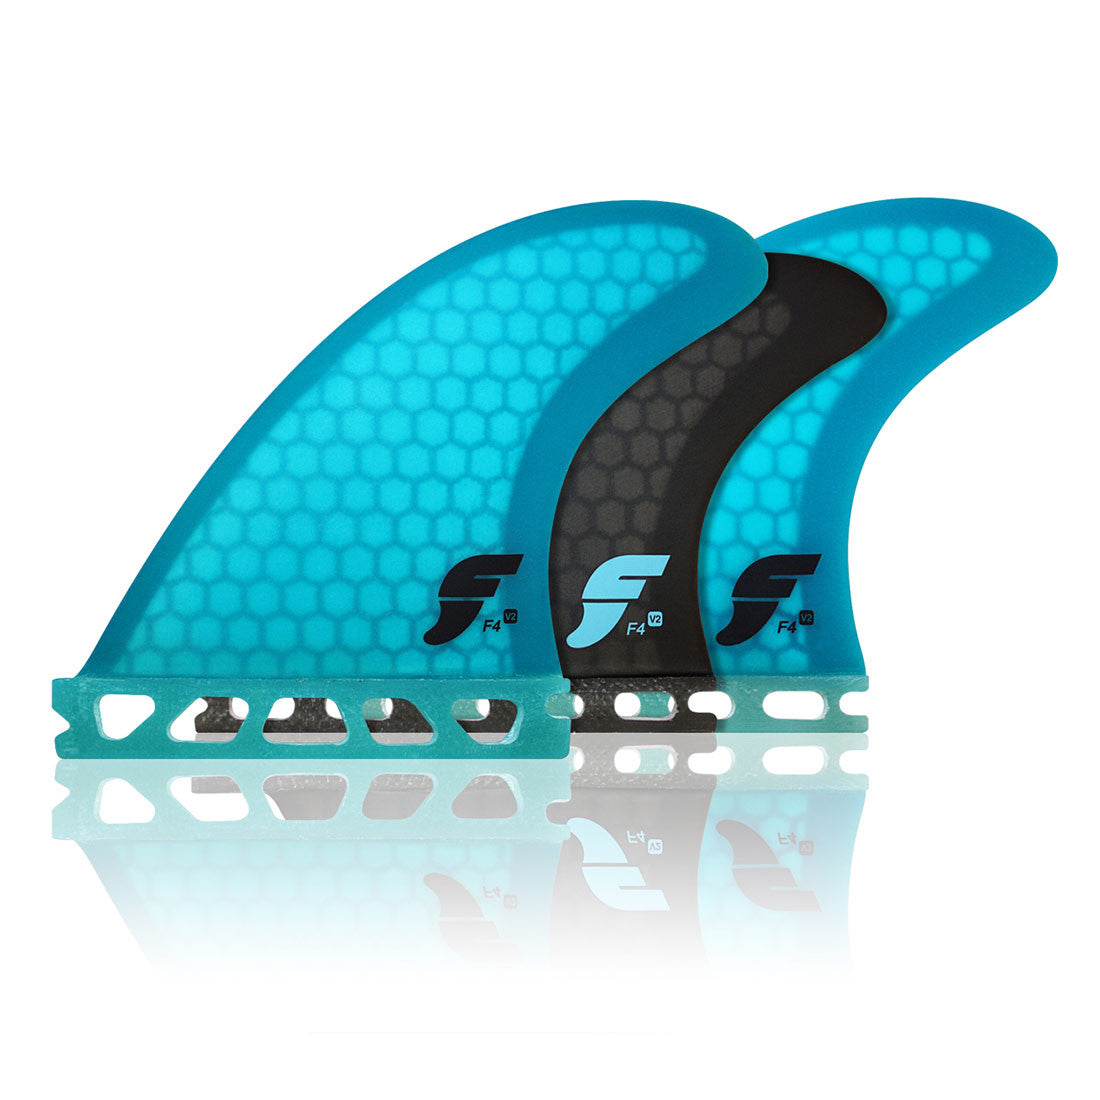 futures fins v2 f4 five fin set small groundswell supply